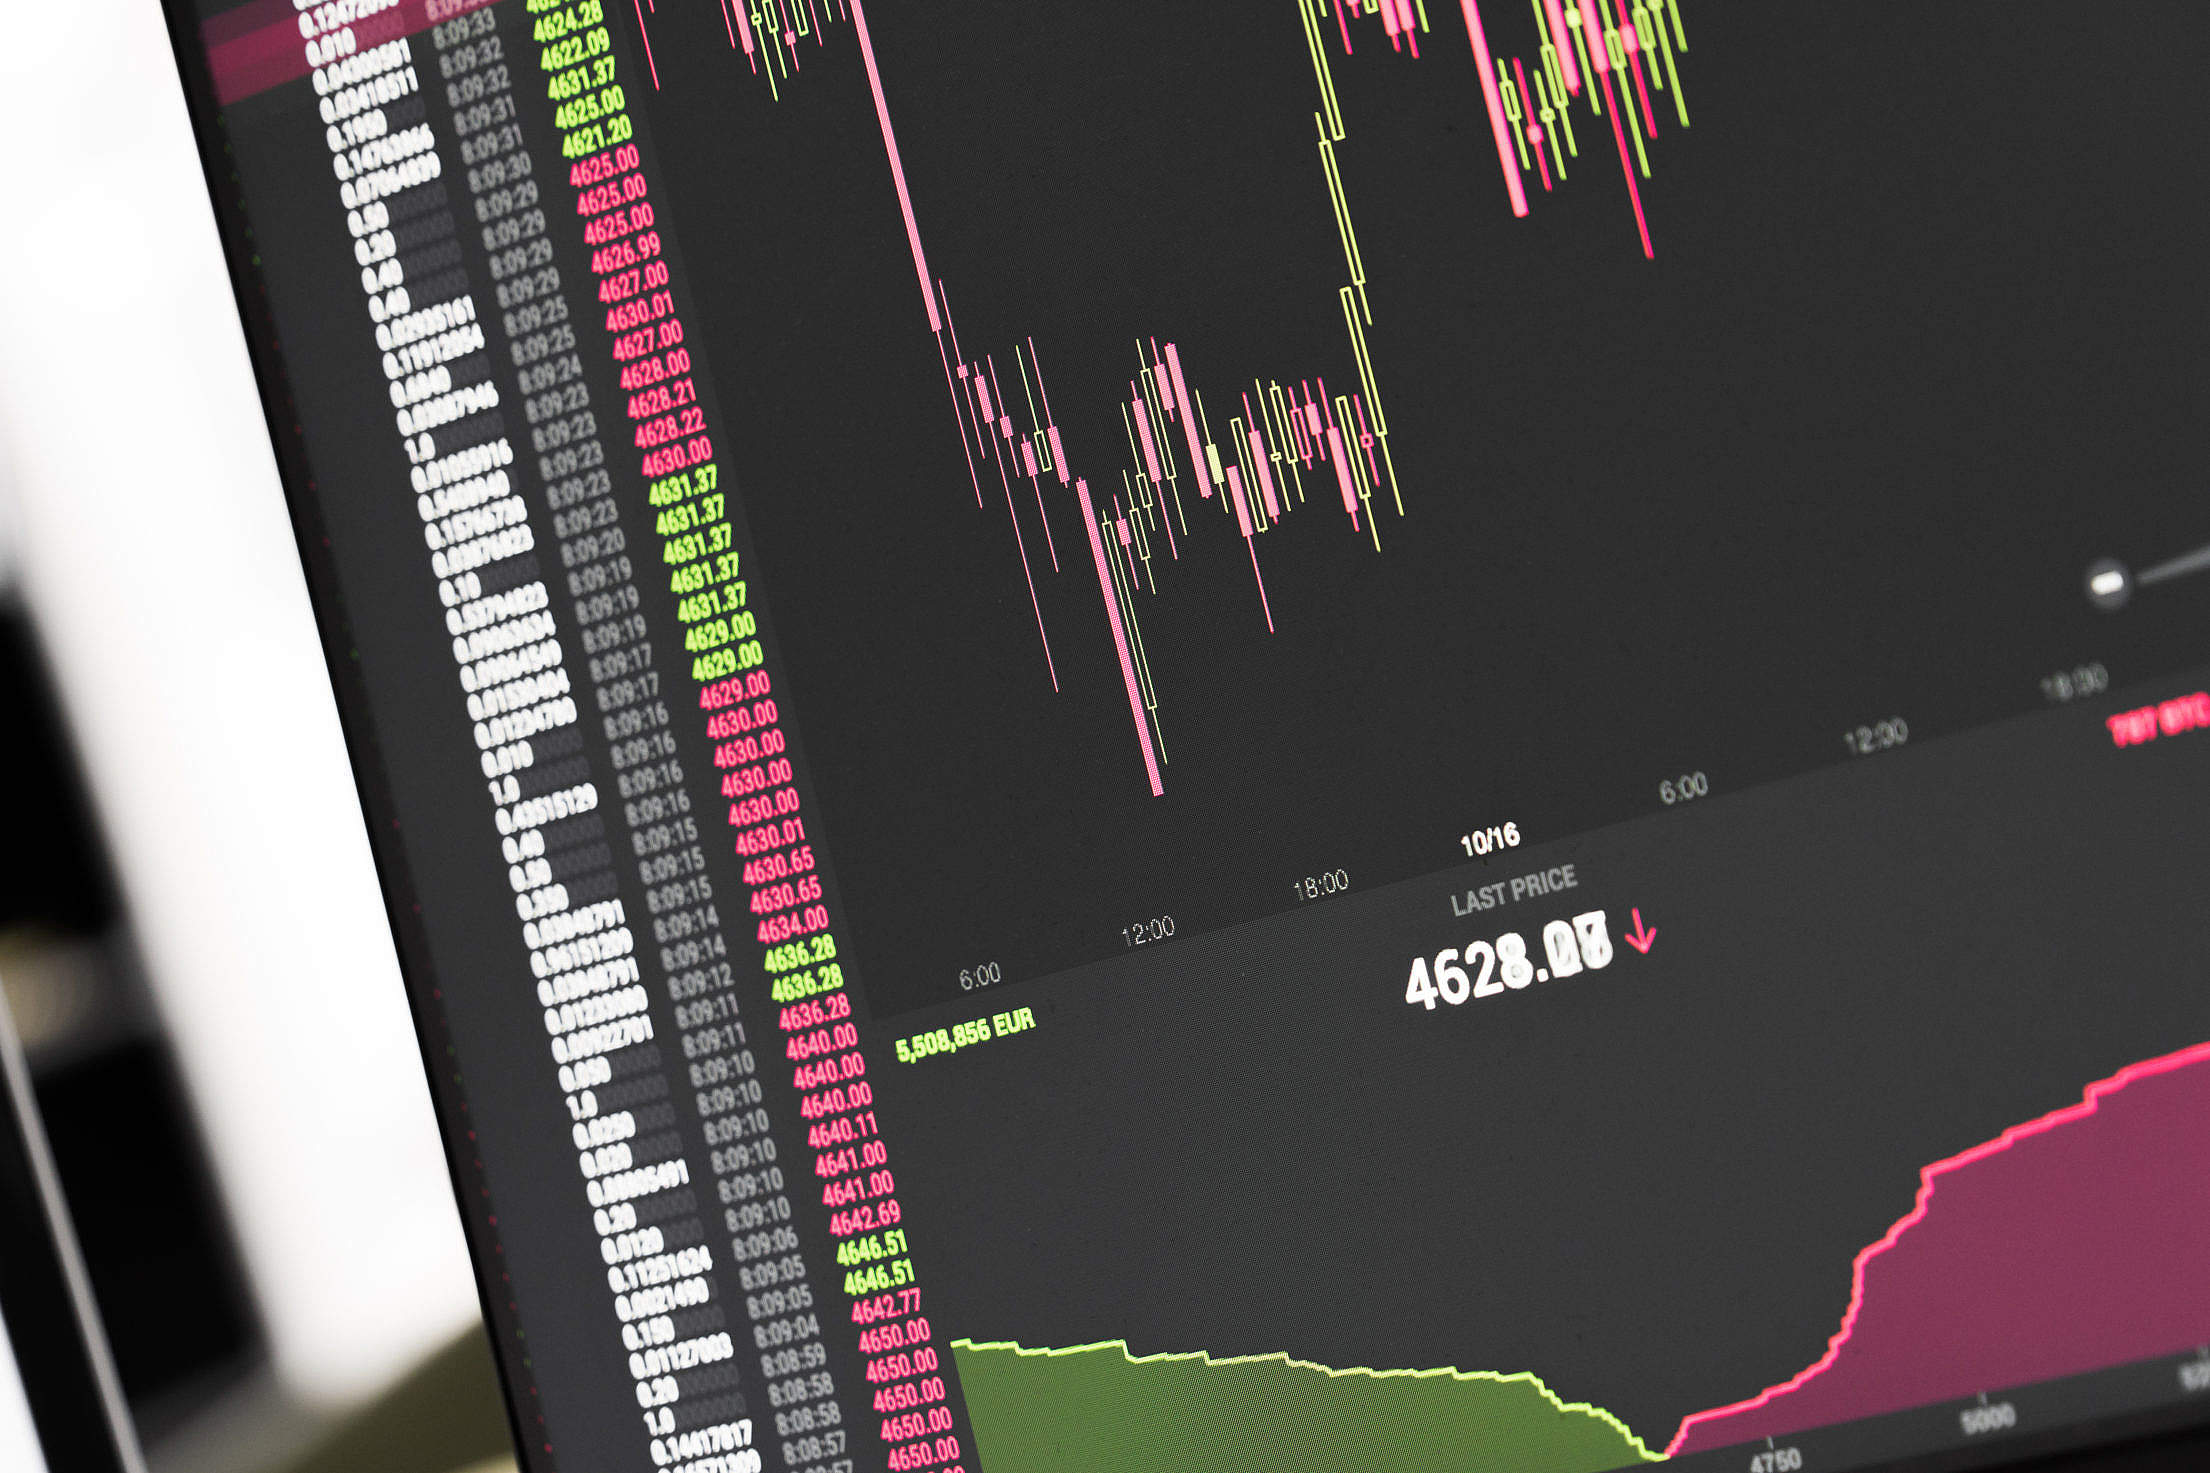 Bitcoin BTC Stock Exchange Live Price Chart